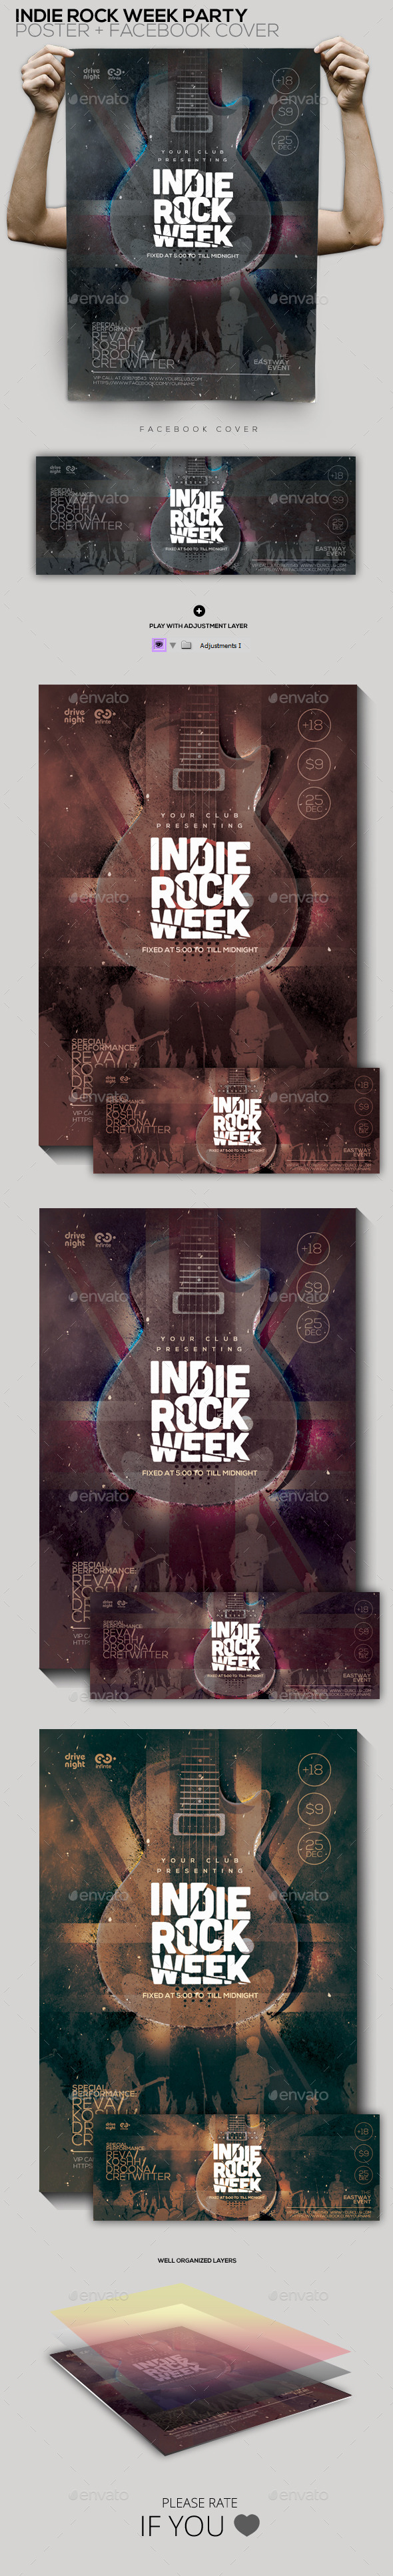 Indie Rock Week Party Poster Facebook Cover